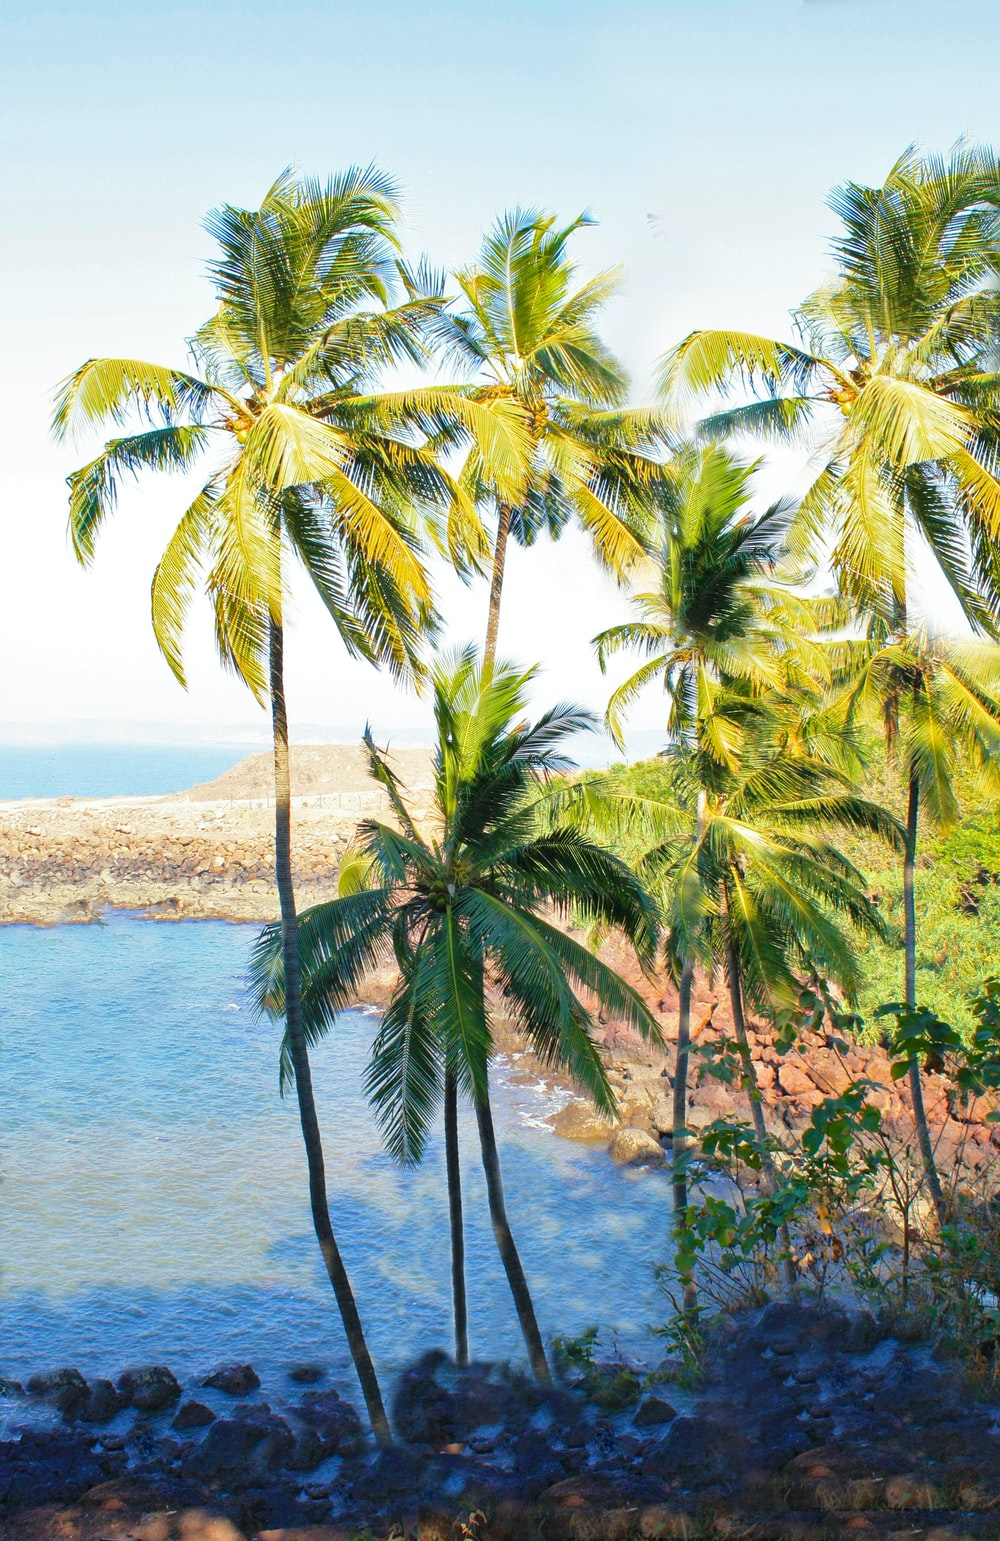 green coconut palm tree near body of water during daytime